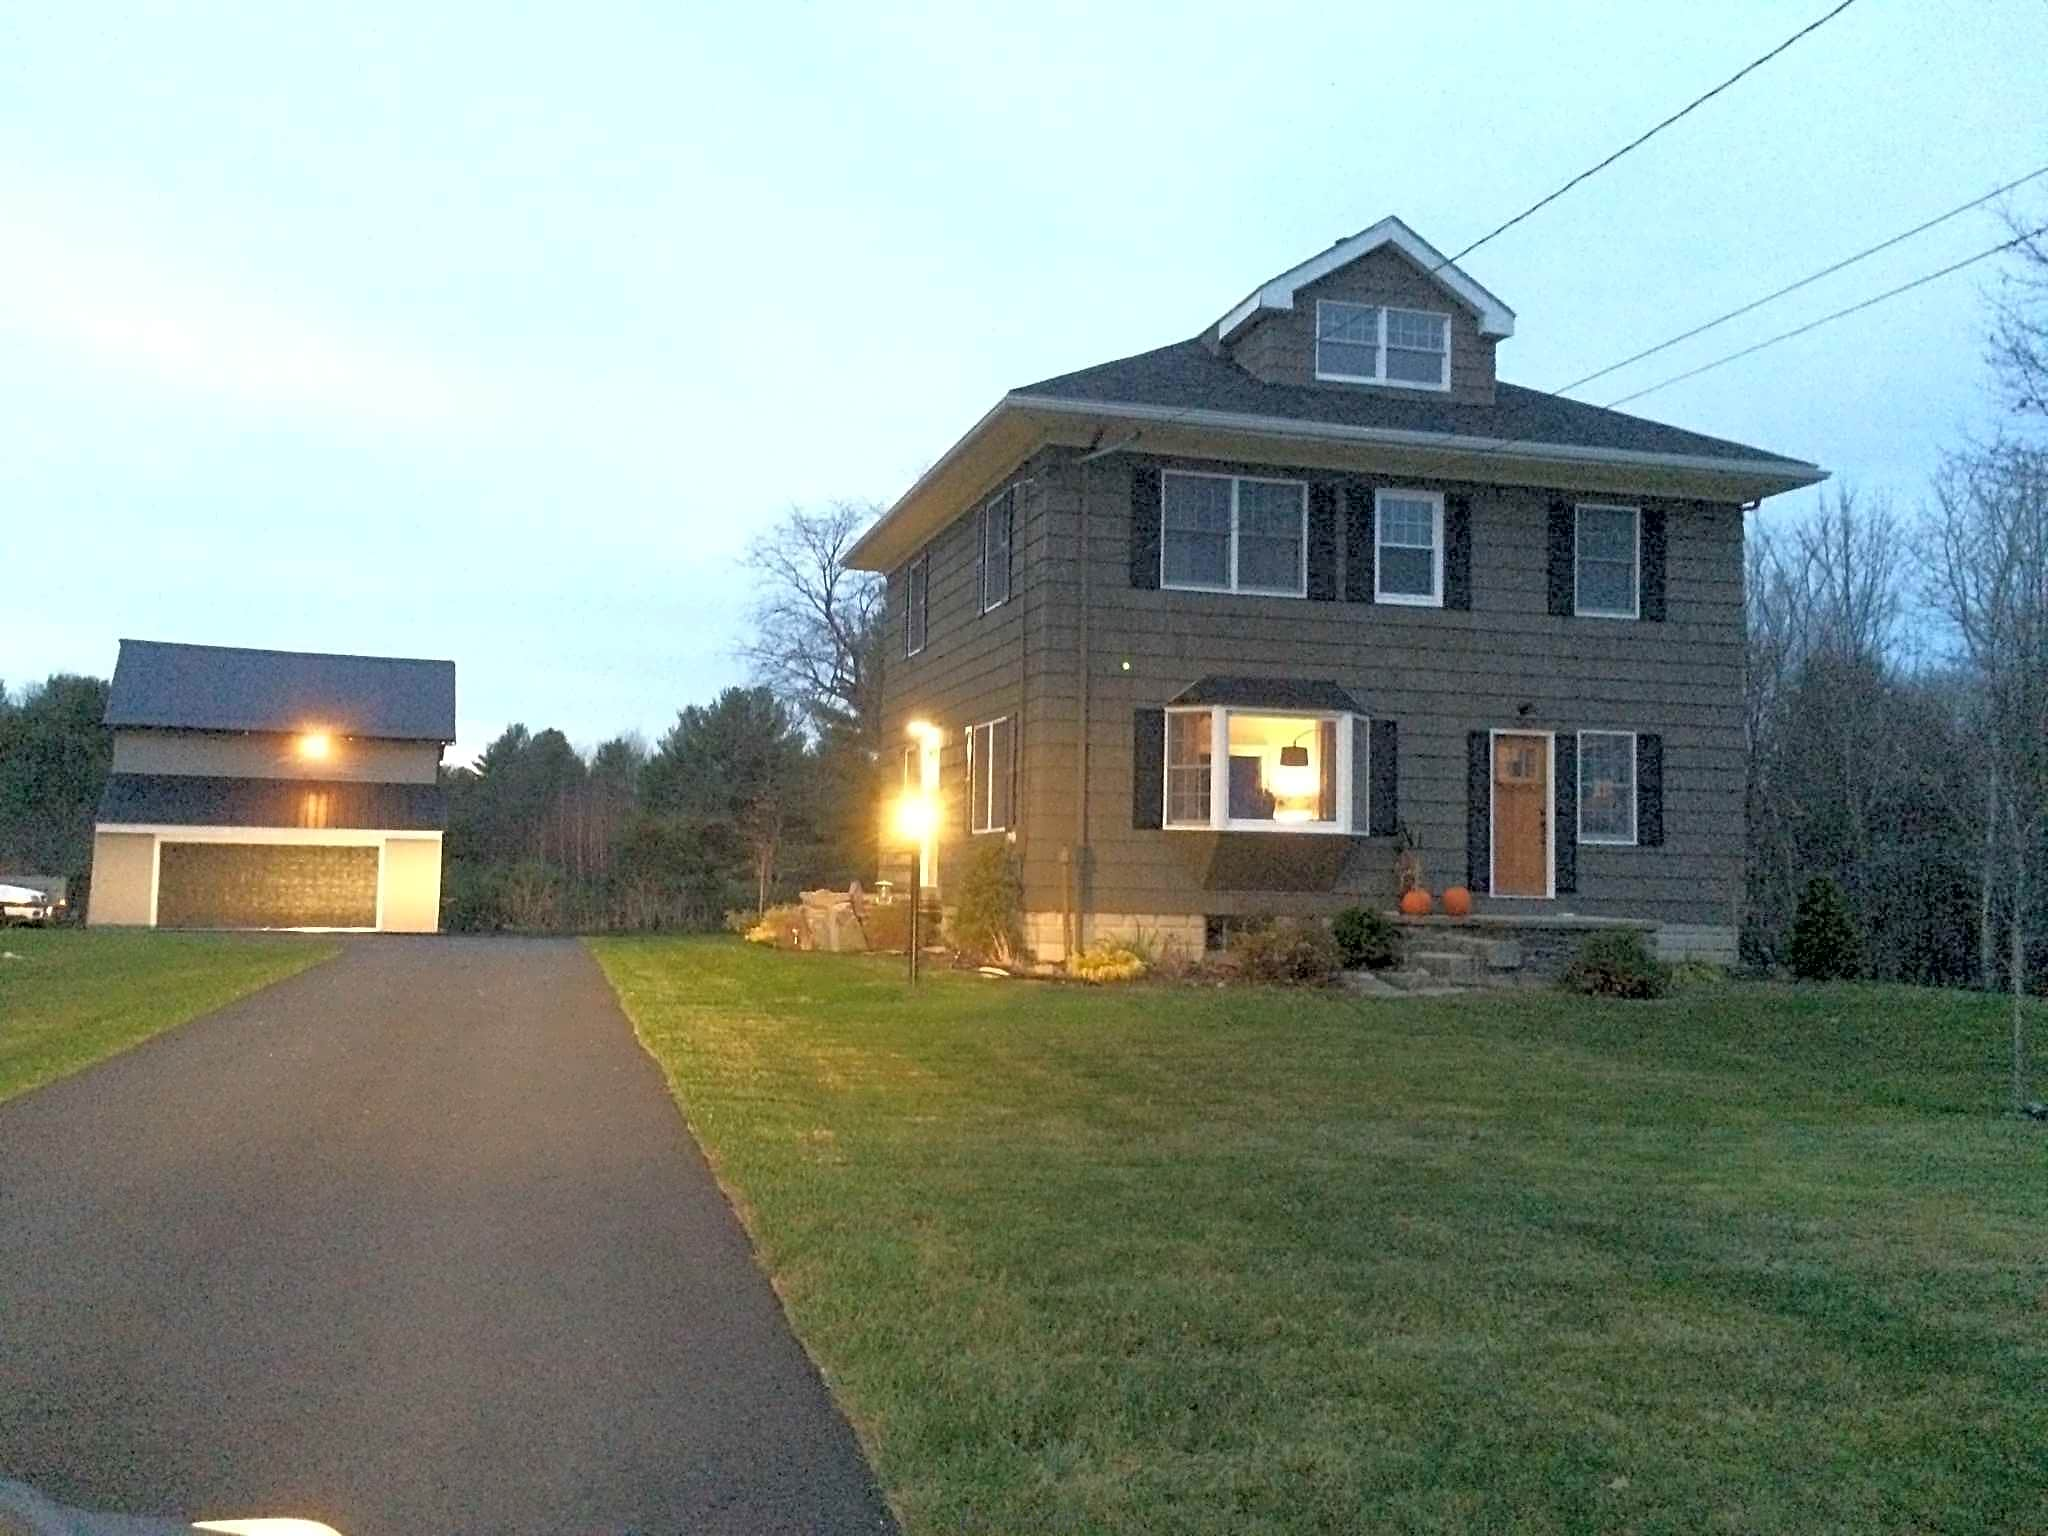 House for Rent in Gorham